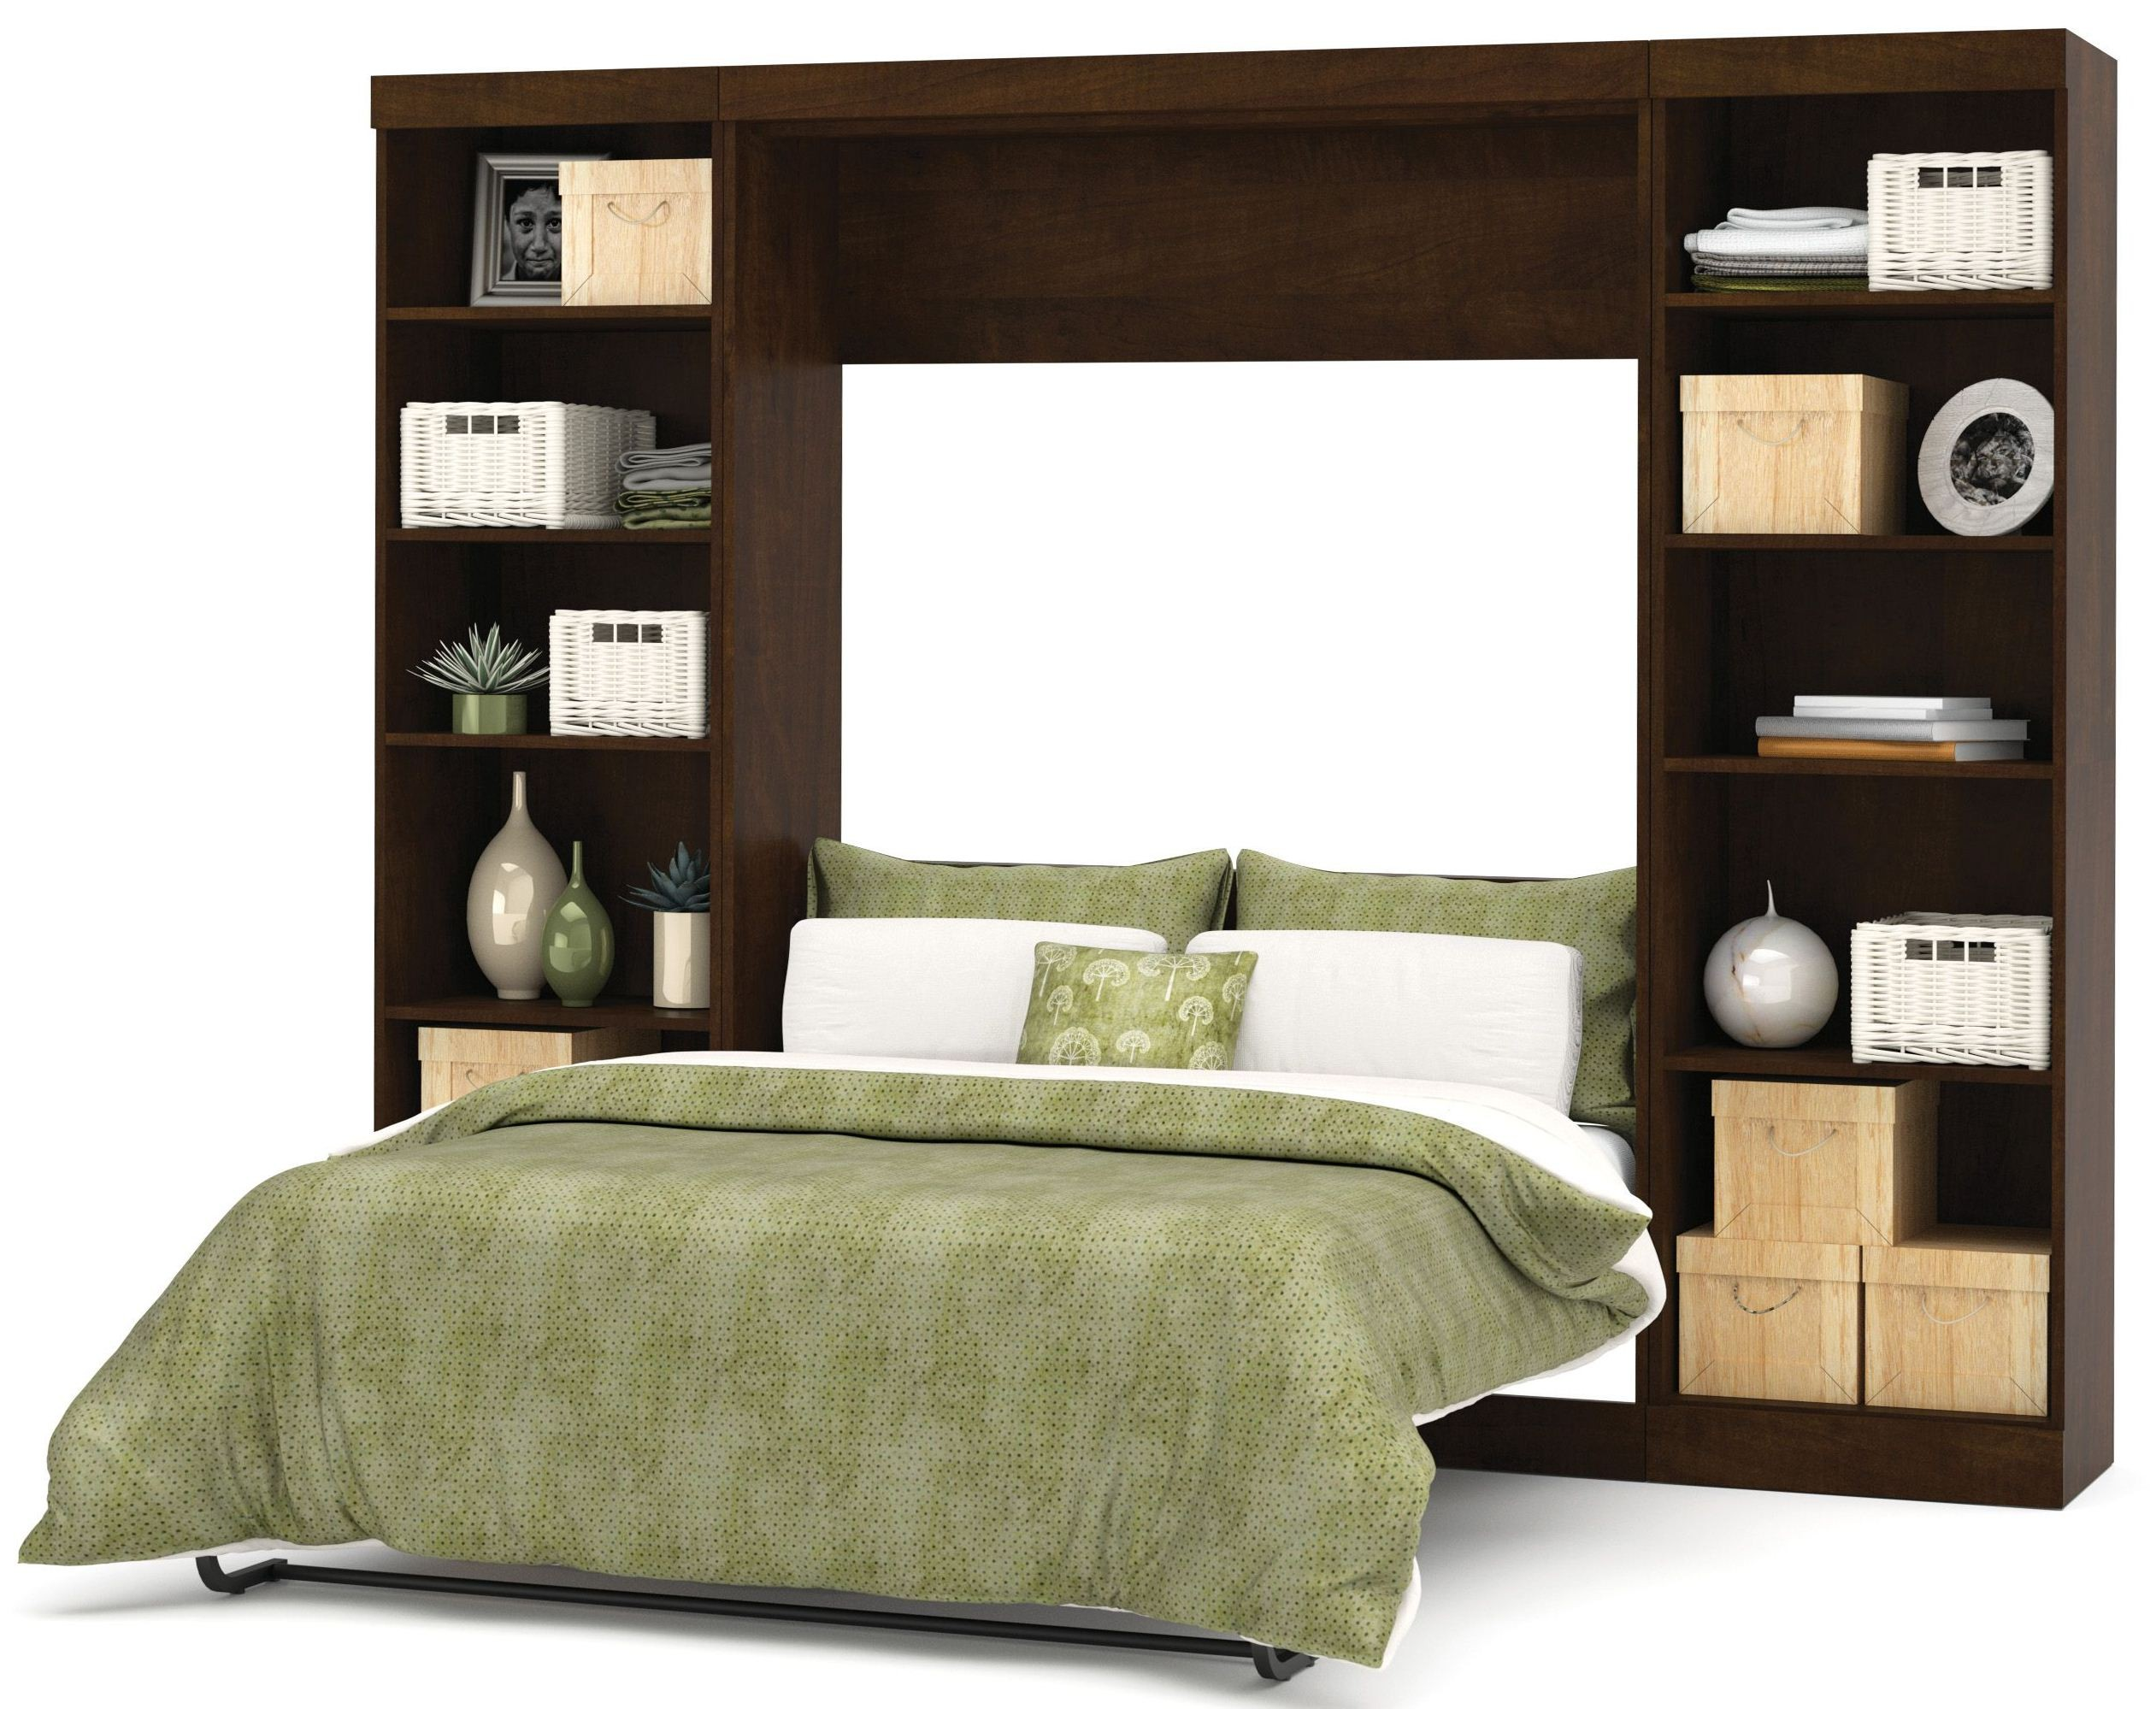 Pur Chocolate 109 Open Storage Full Wall Bed From Bestar 26893 69 Coleman Furniture